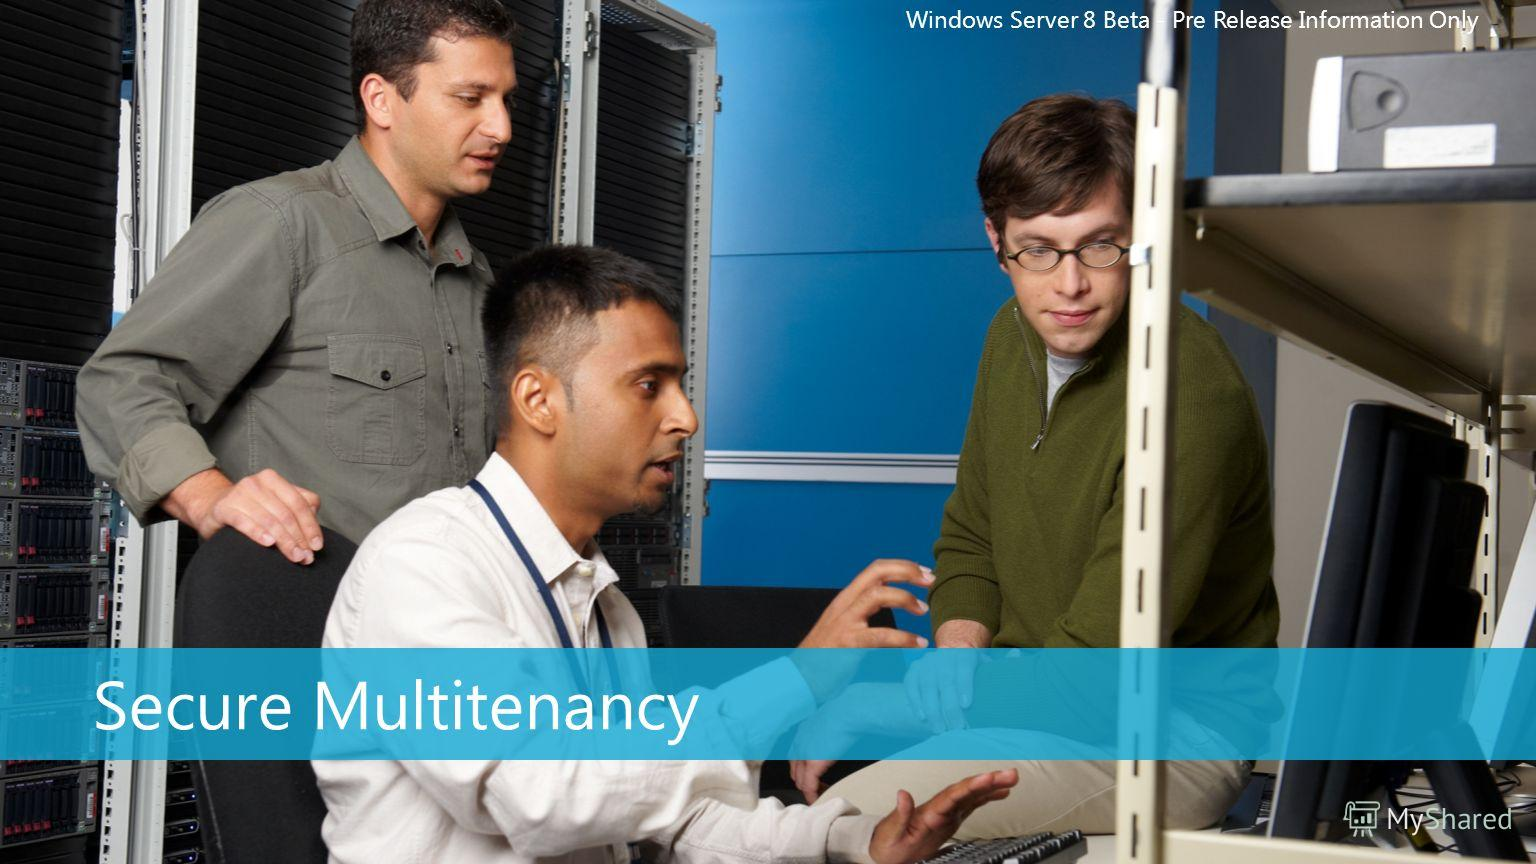 Windows Server 8 Beta - Pre Release Information Only Secure Multitenancy